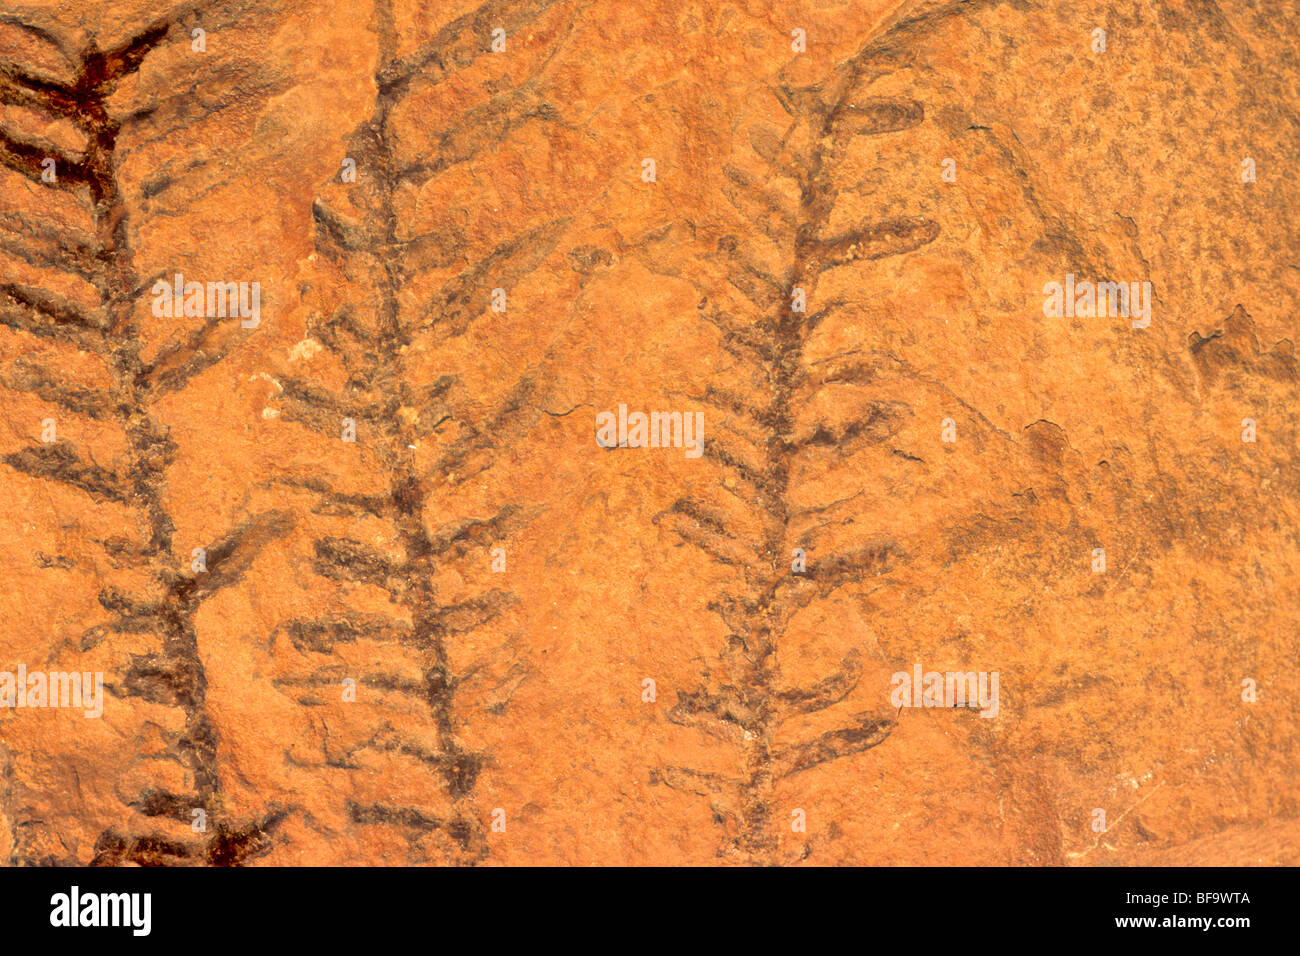 Fossil ferns from Hermit Shale, early Permian age, museum collection #3074 at Grand Canyon National Park, Arizona - Stock Image